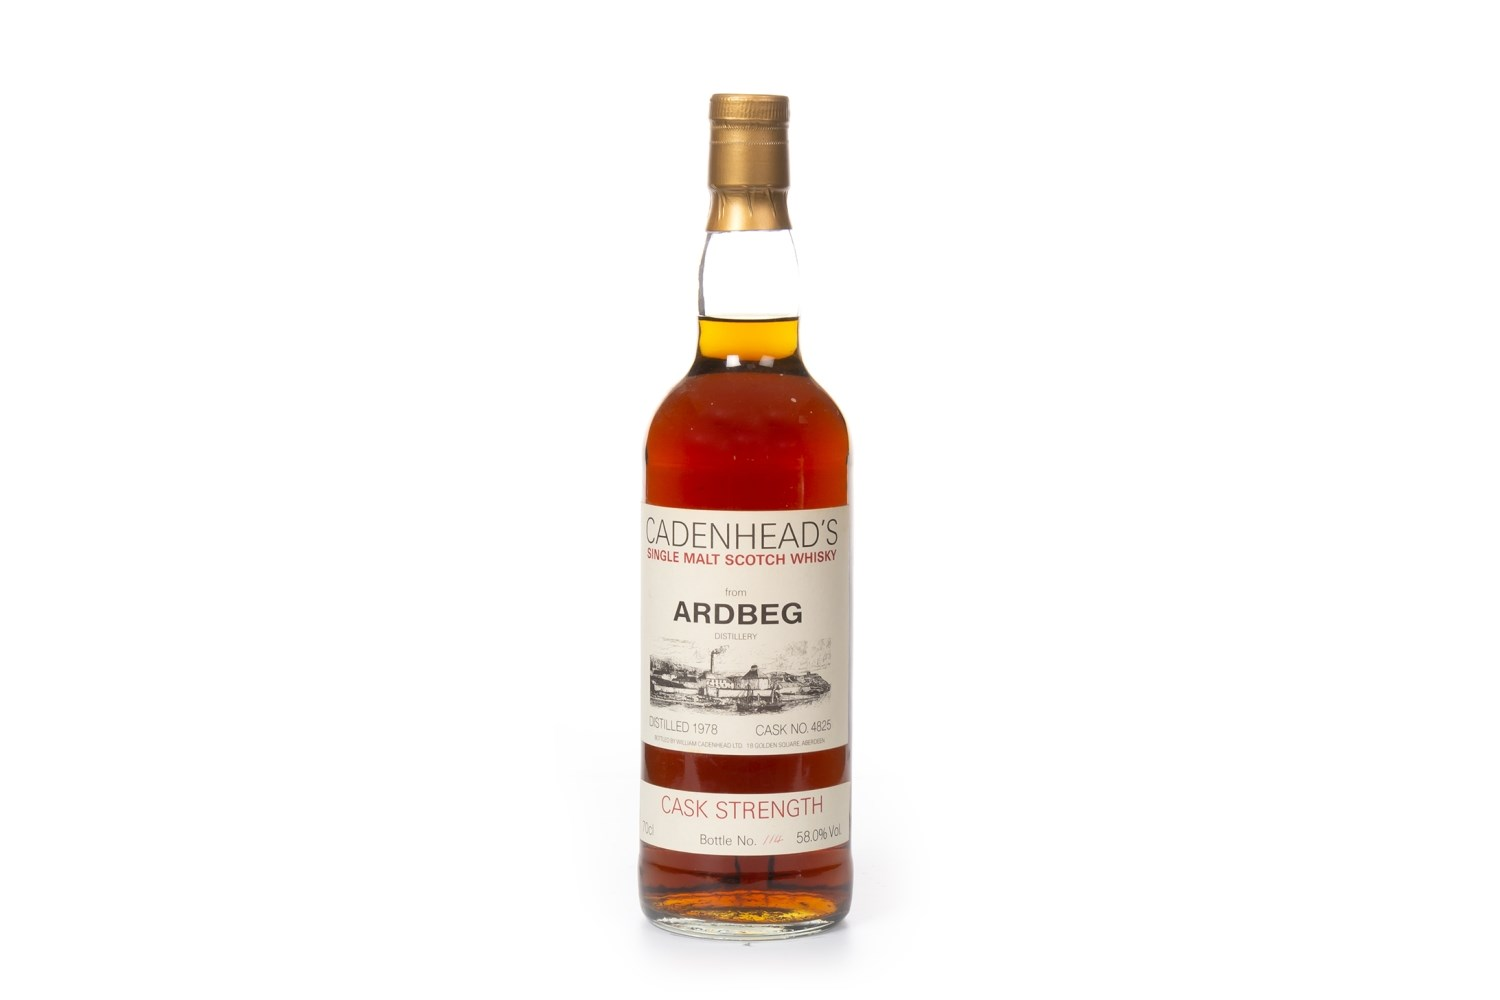 Lot 1022 - ARDBEG 1978 CADENHEAD'S CASK STRENGTH